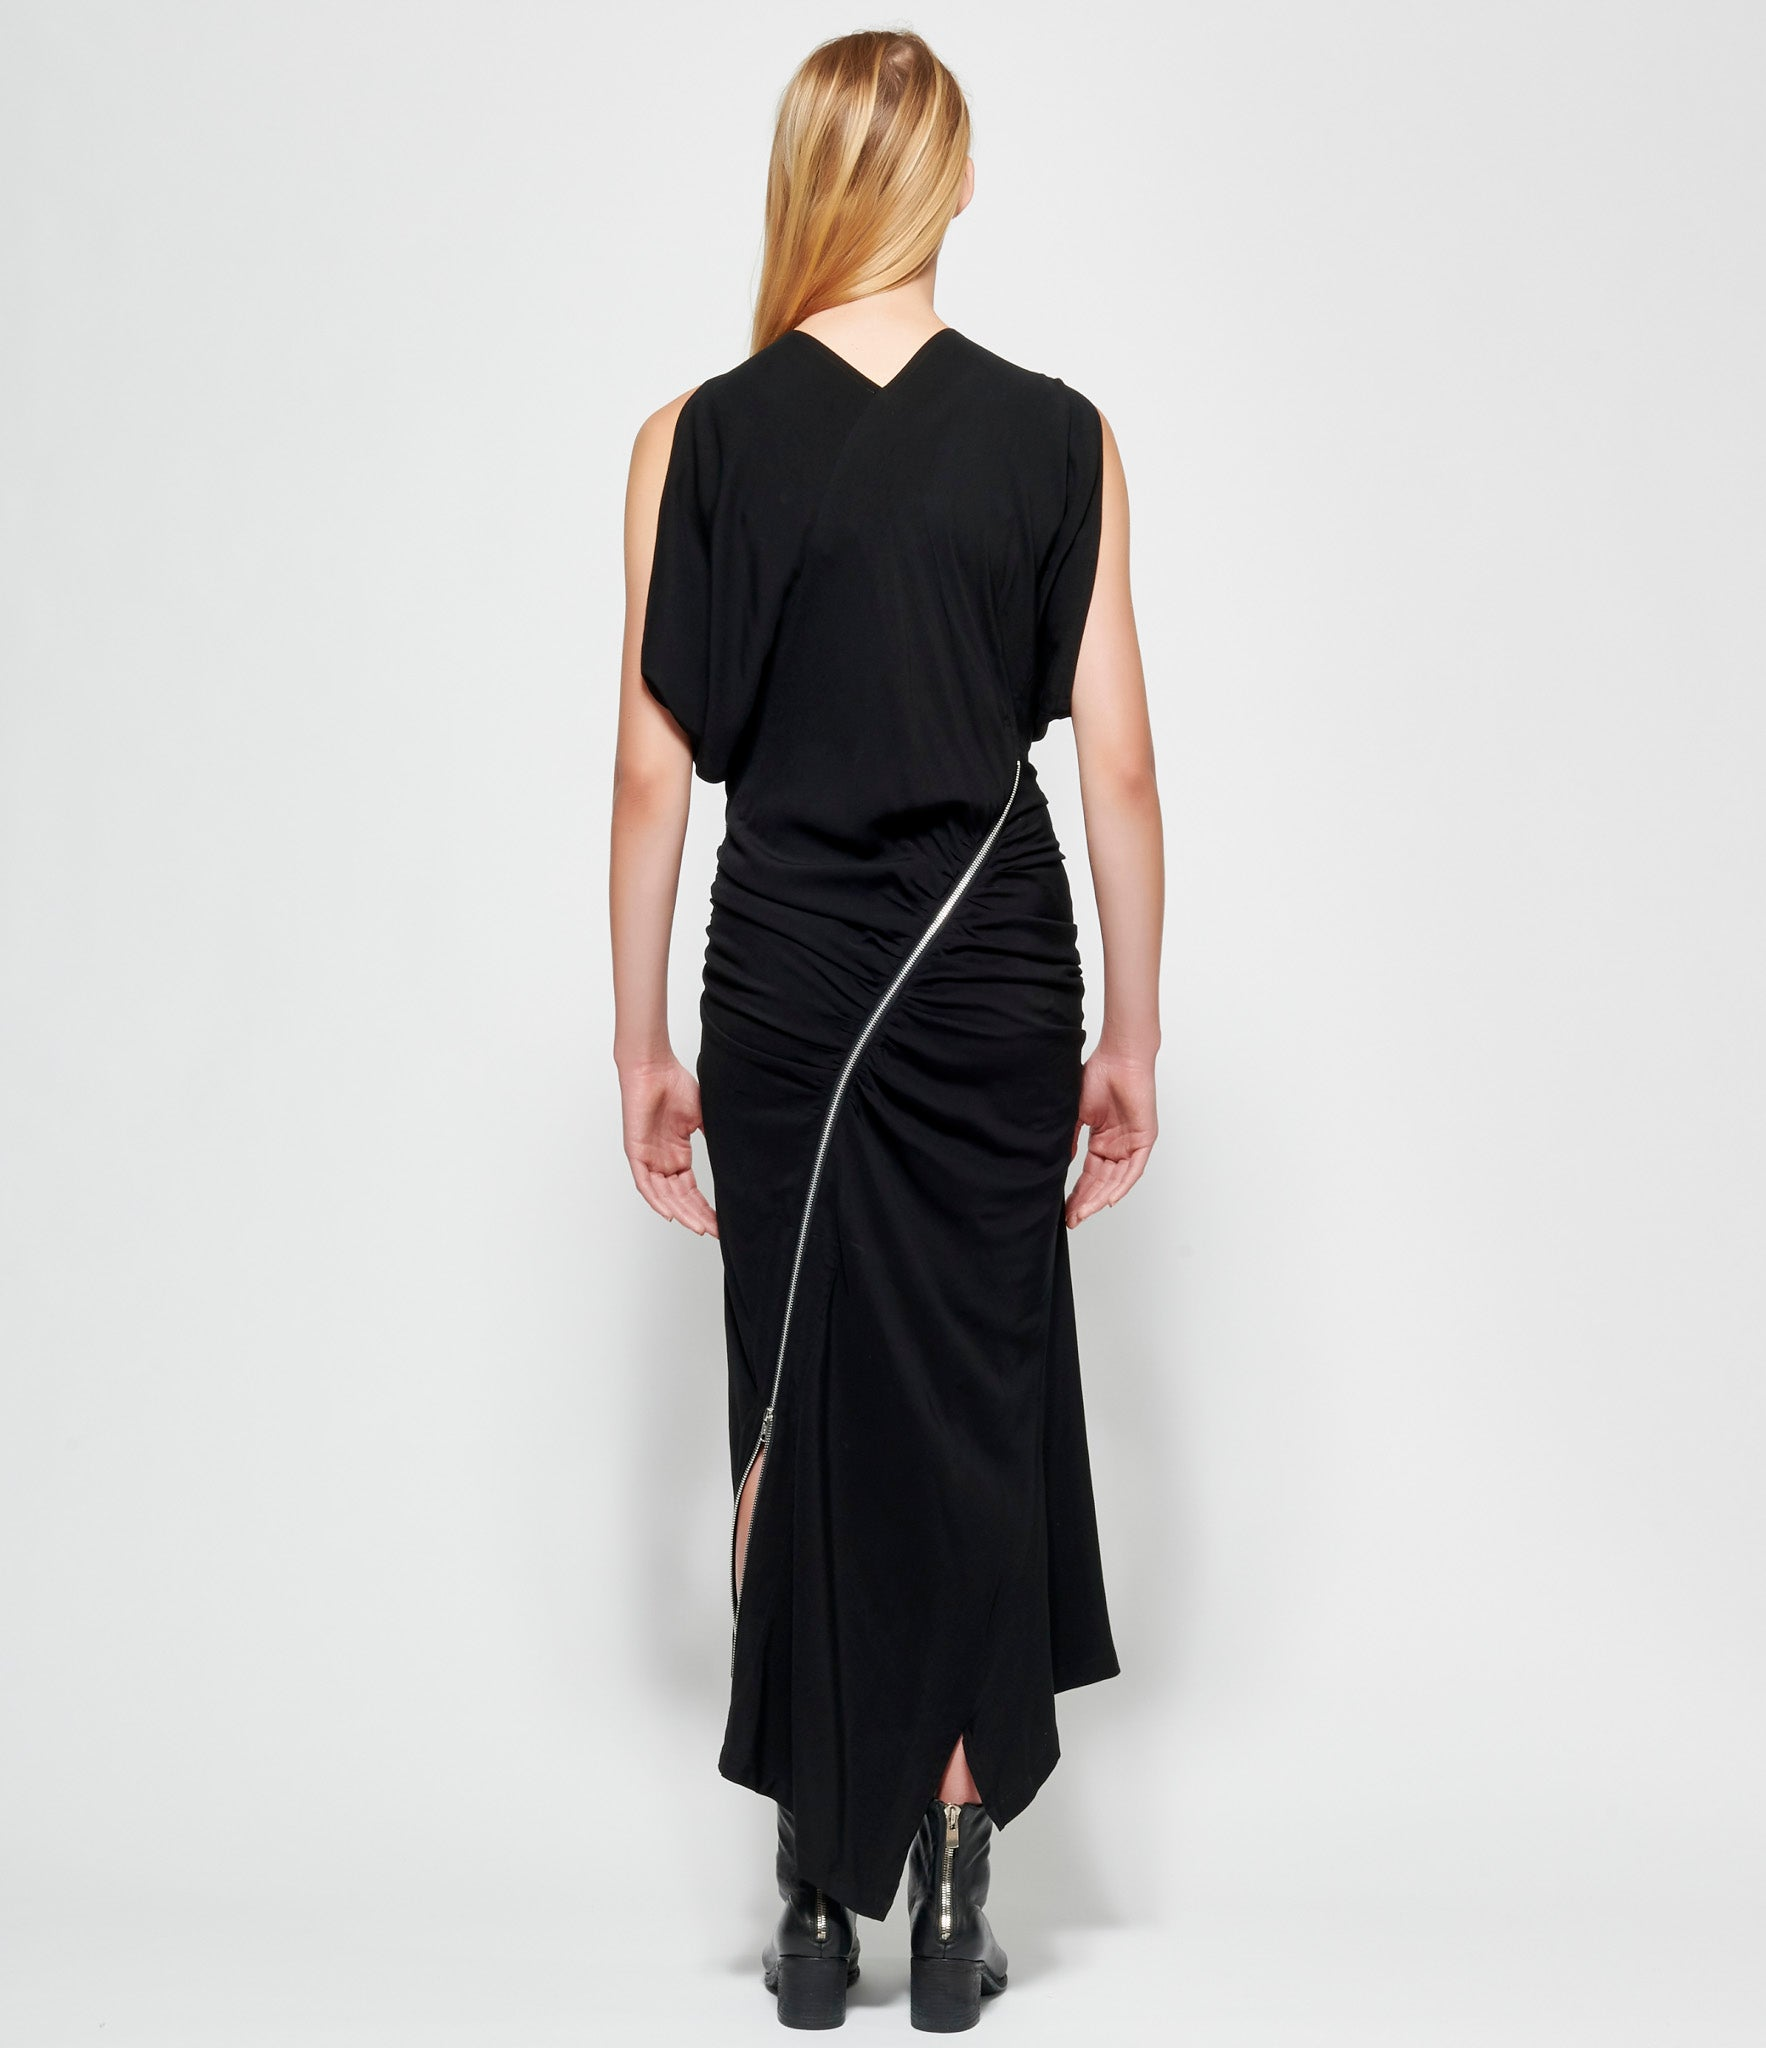 Limi Feu Zip Gather Dress